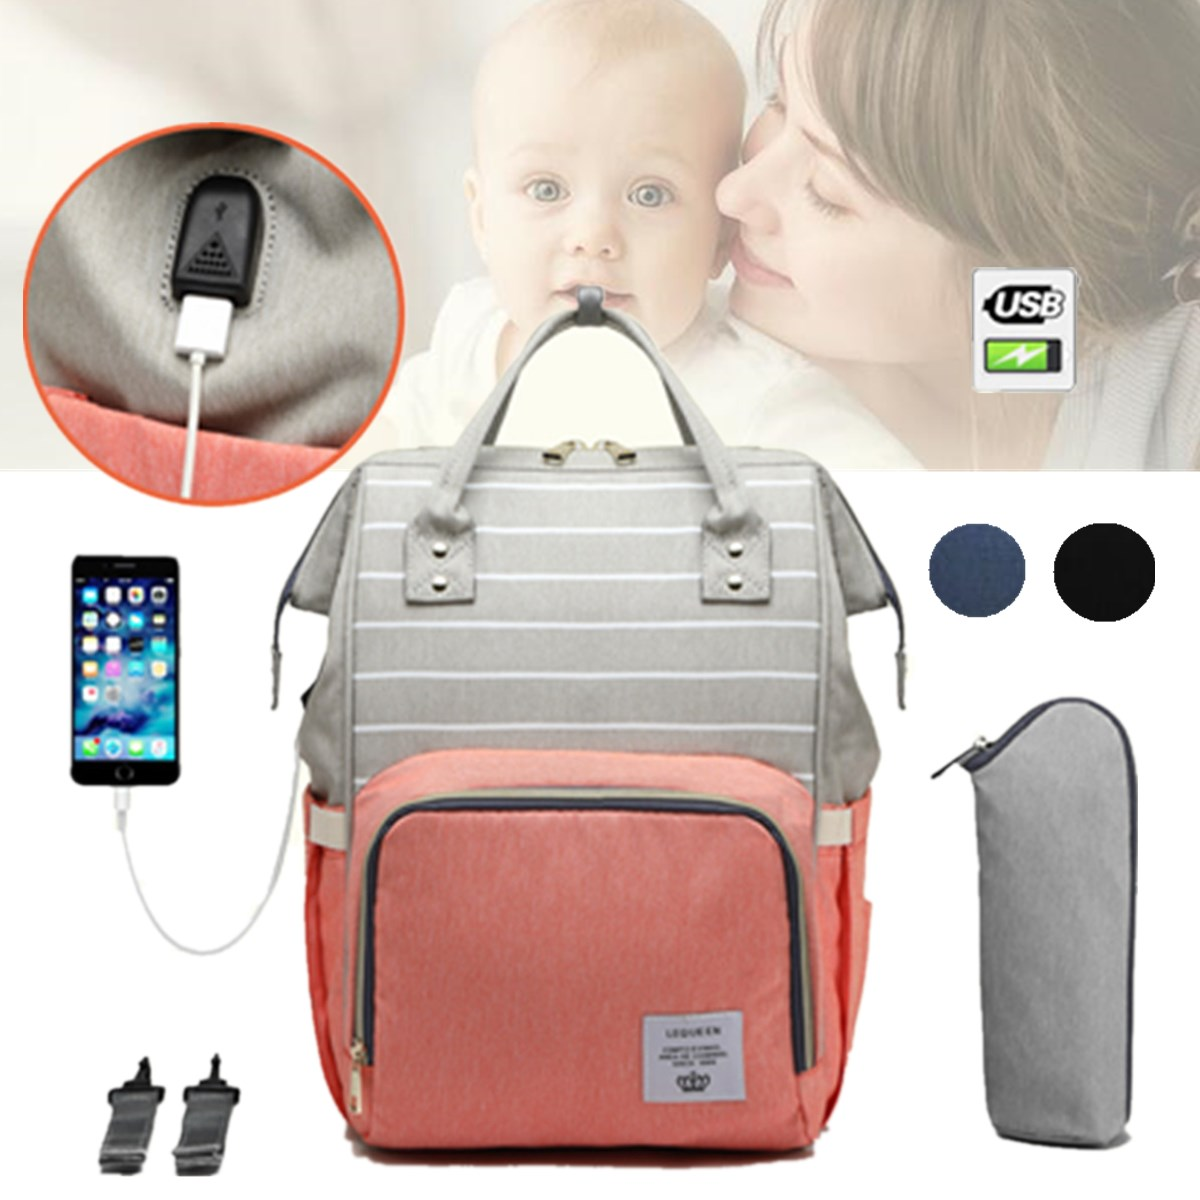 2019 Nappy Backpack Bag Mummy Large Capacity Bag Mom Baby Multi-function Waterproof Outdoor Travel Diaper Bags For Baby Care2019 Nappy Backpack Bag Mummy Large Capacity Bag Mom Baby Multi-function Waterproof Outdoor Travel Diaper Bags For Baby Care